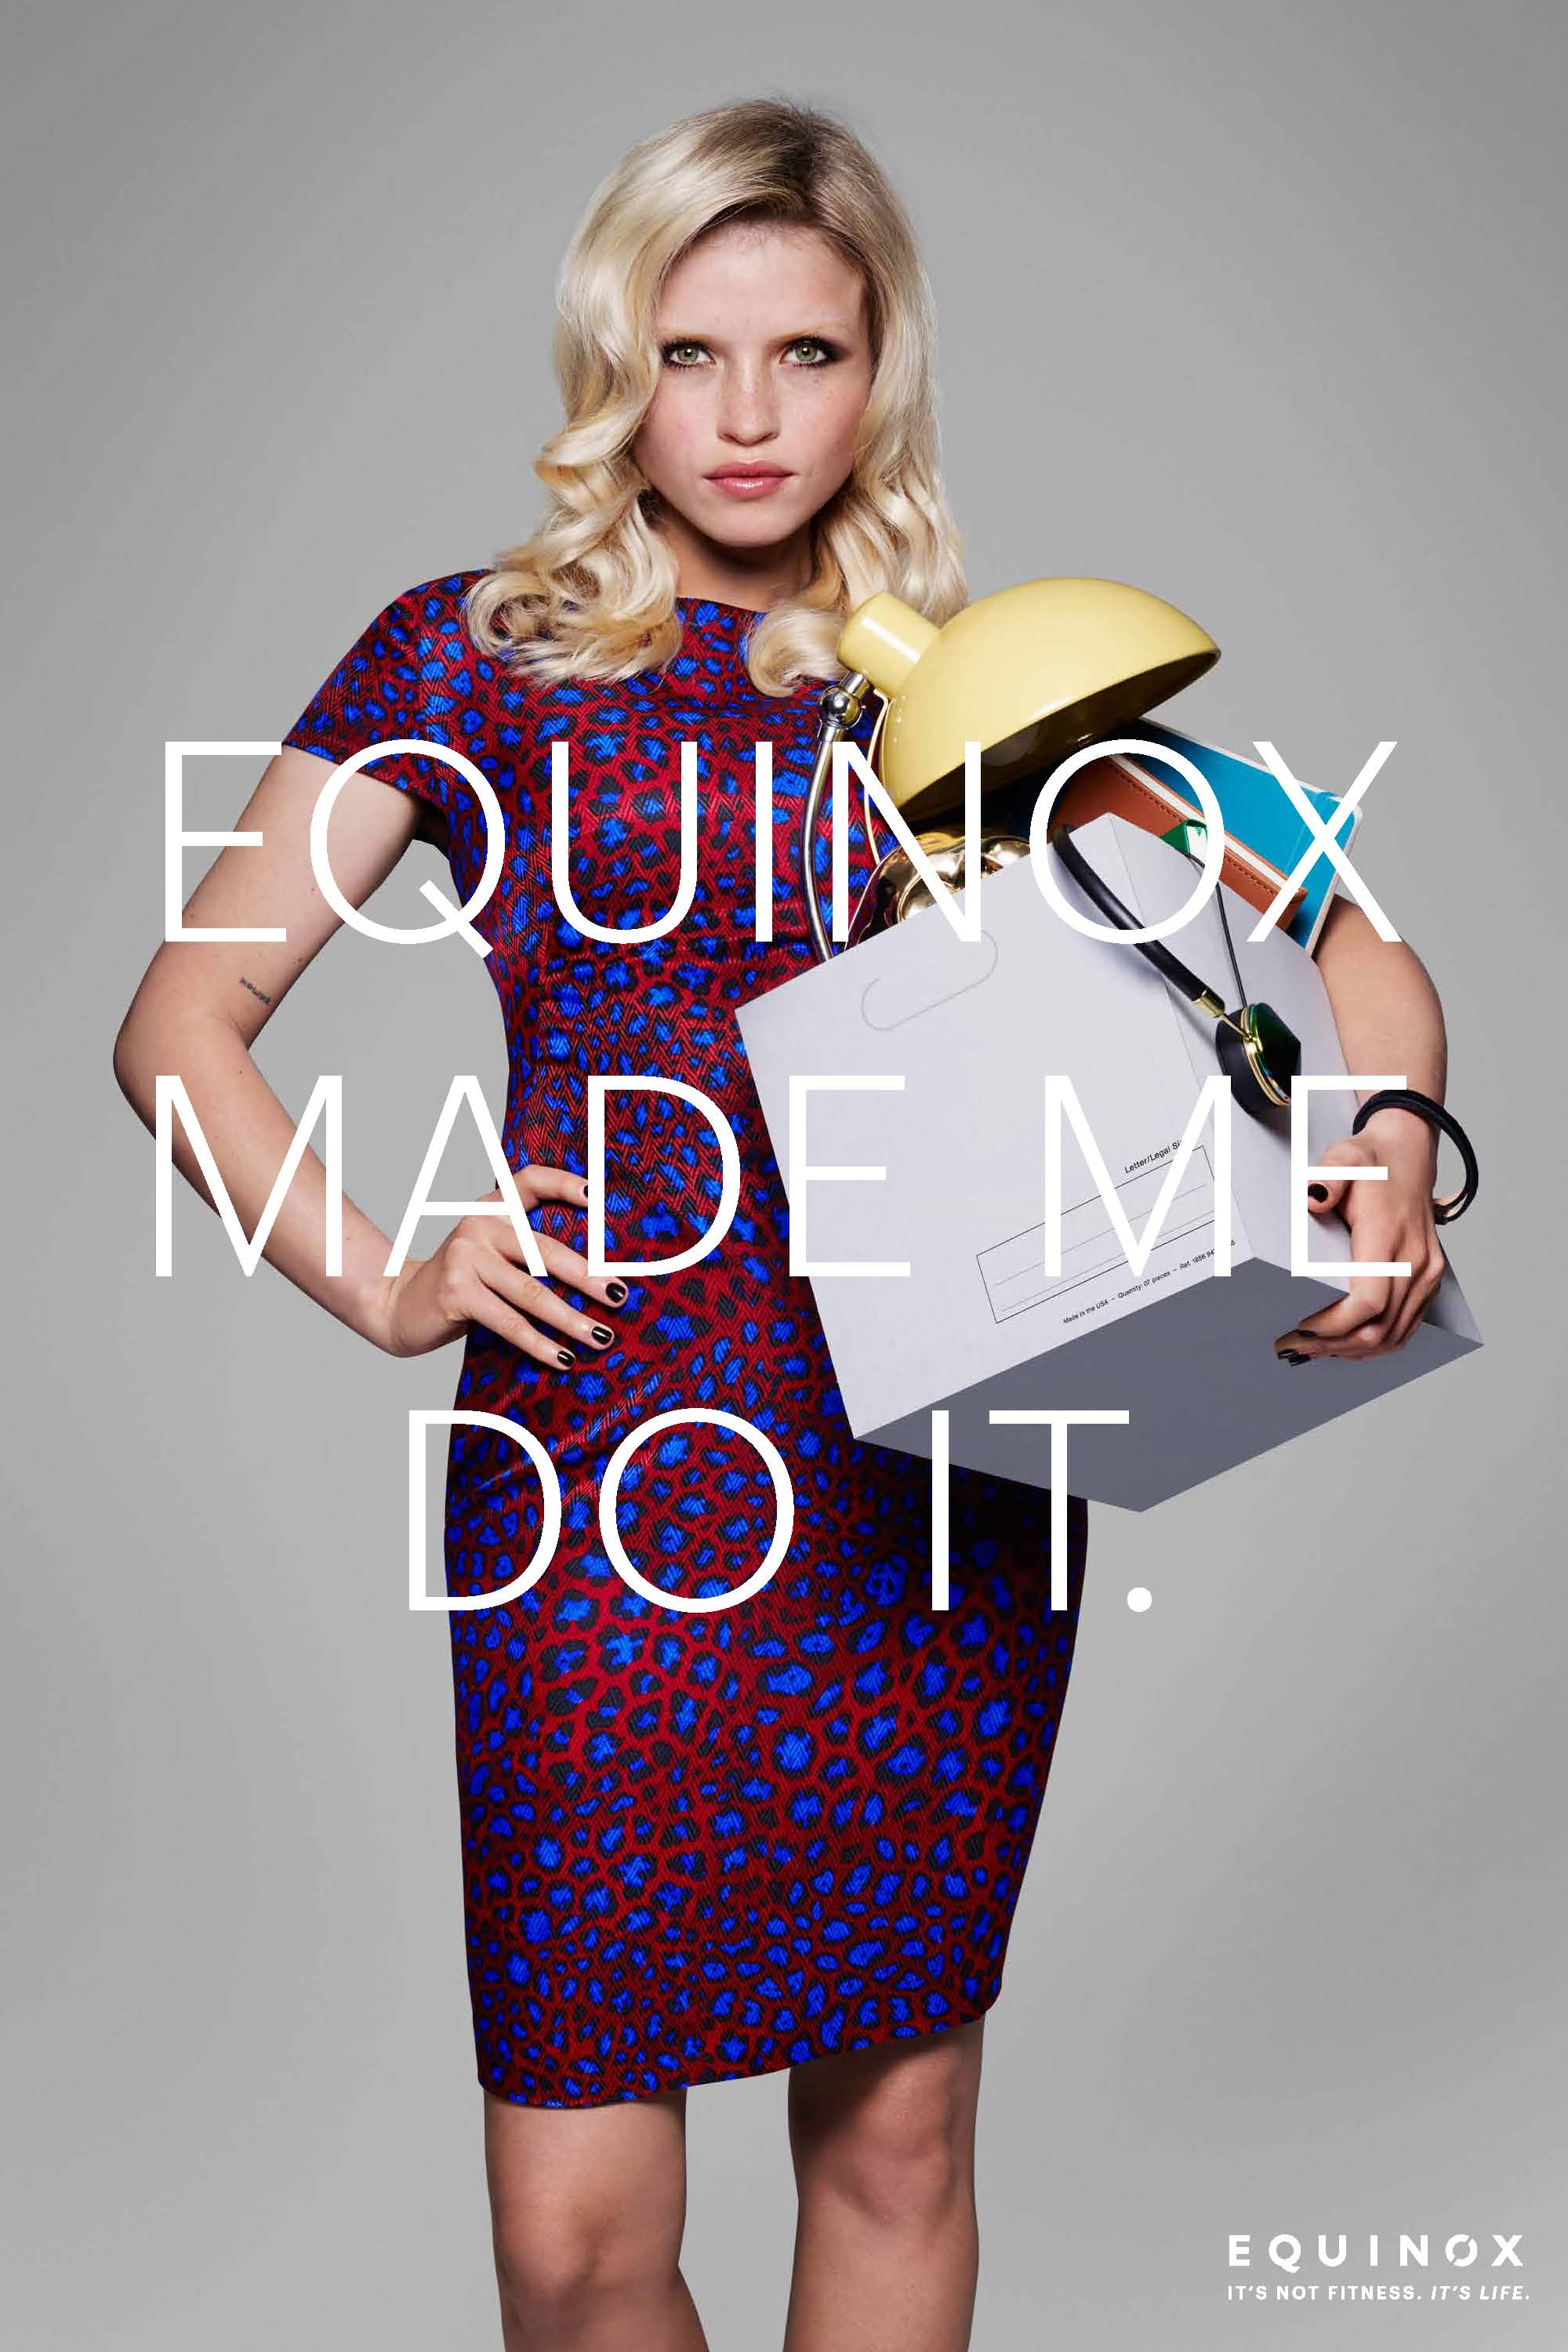 Equinox ad campaign 2015 Equinox Made Me Do It by Rankin 06